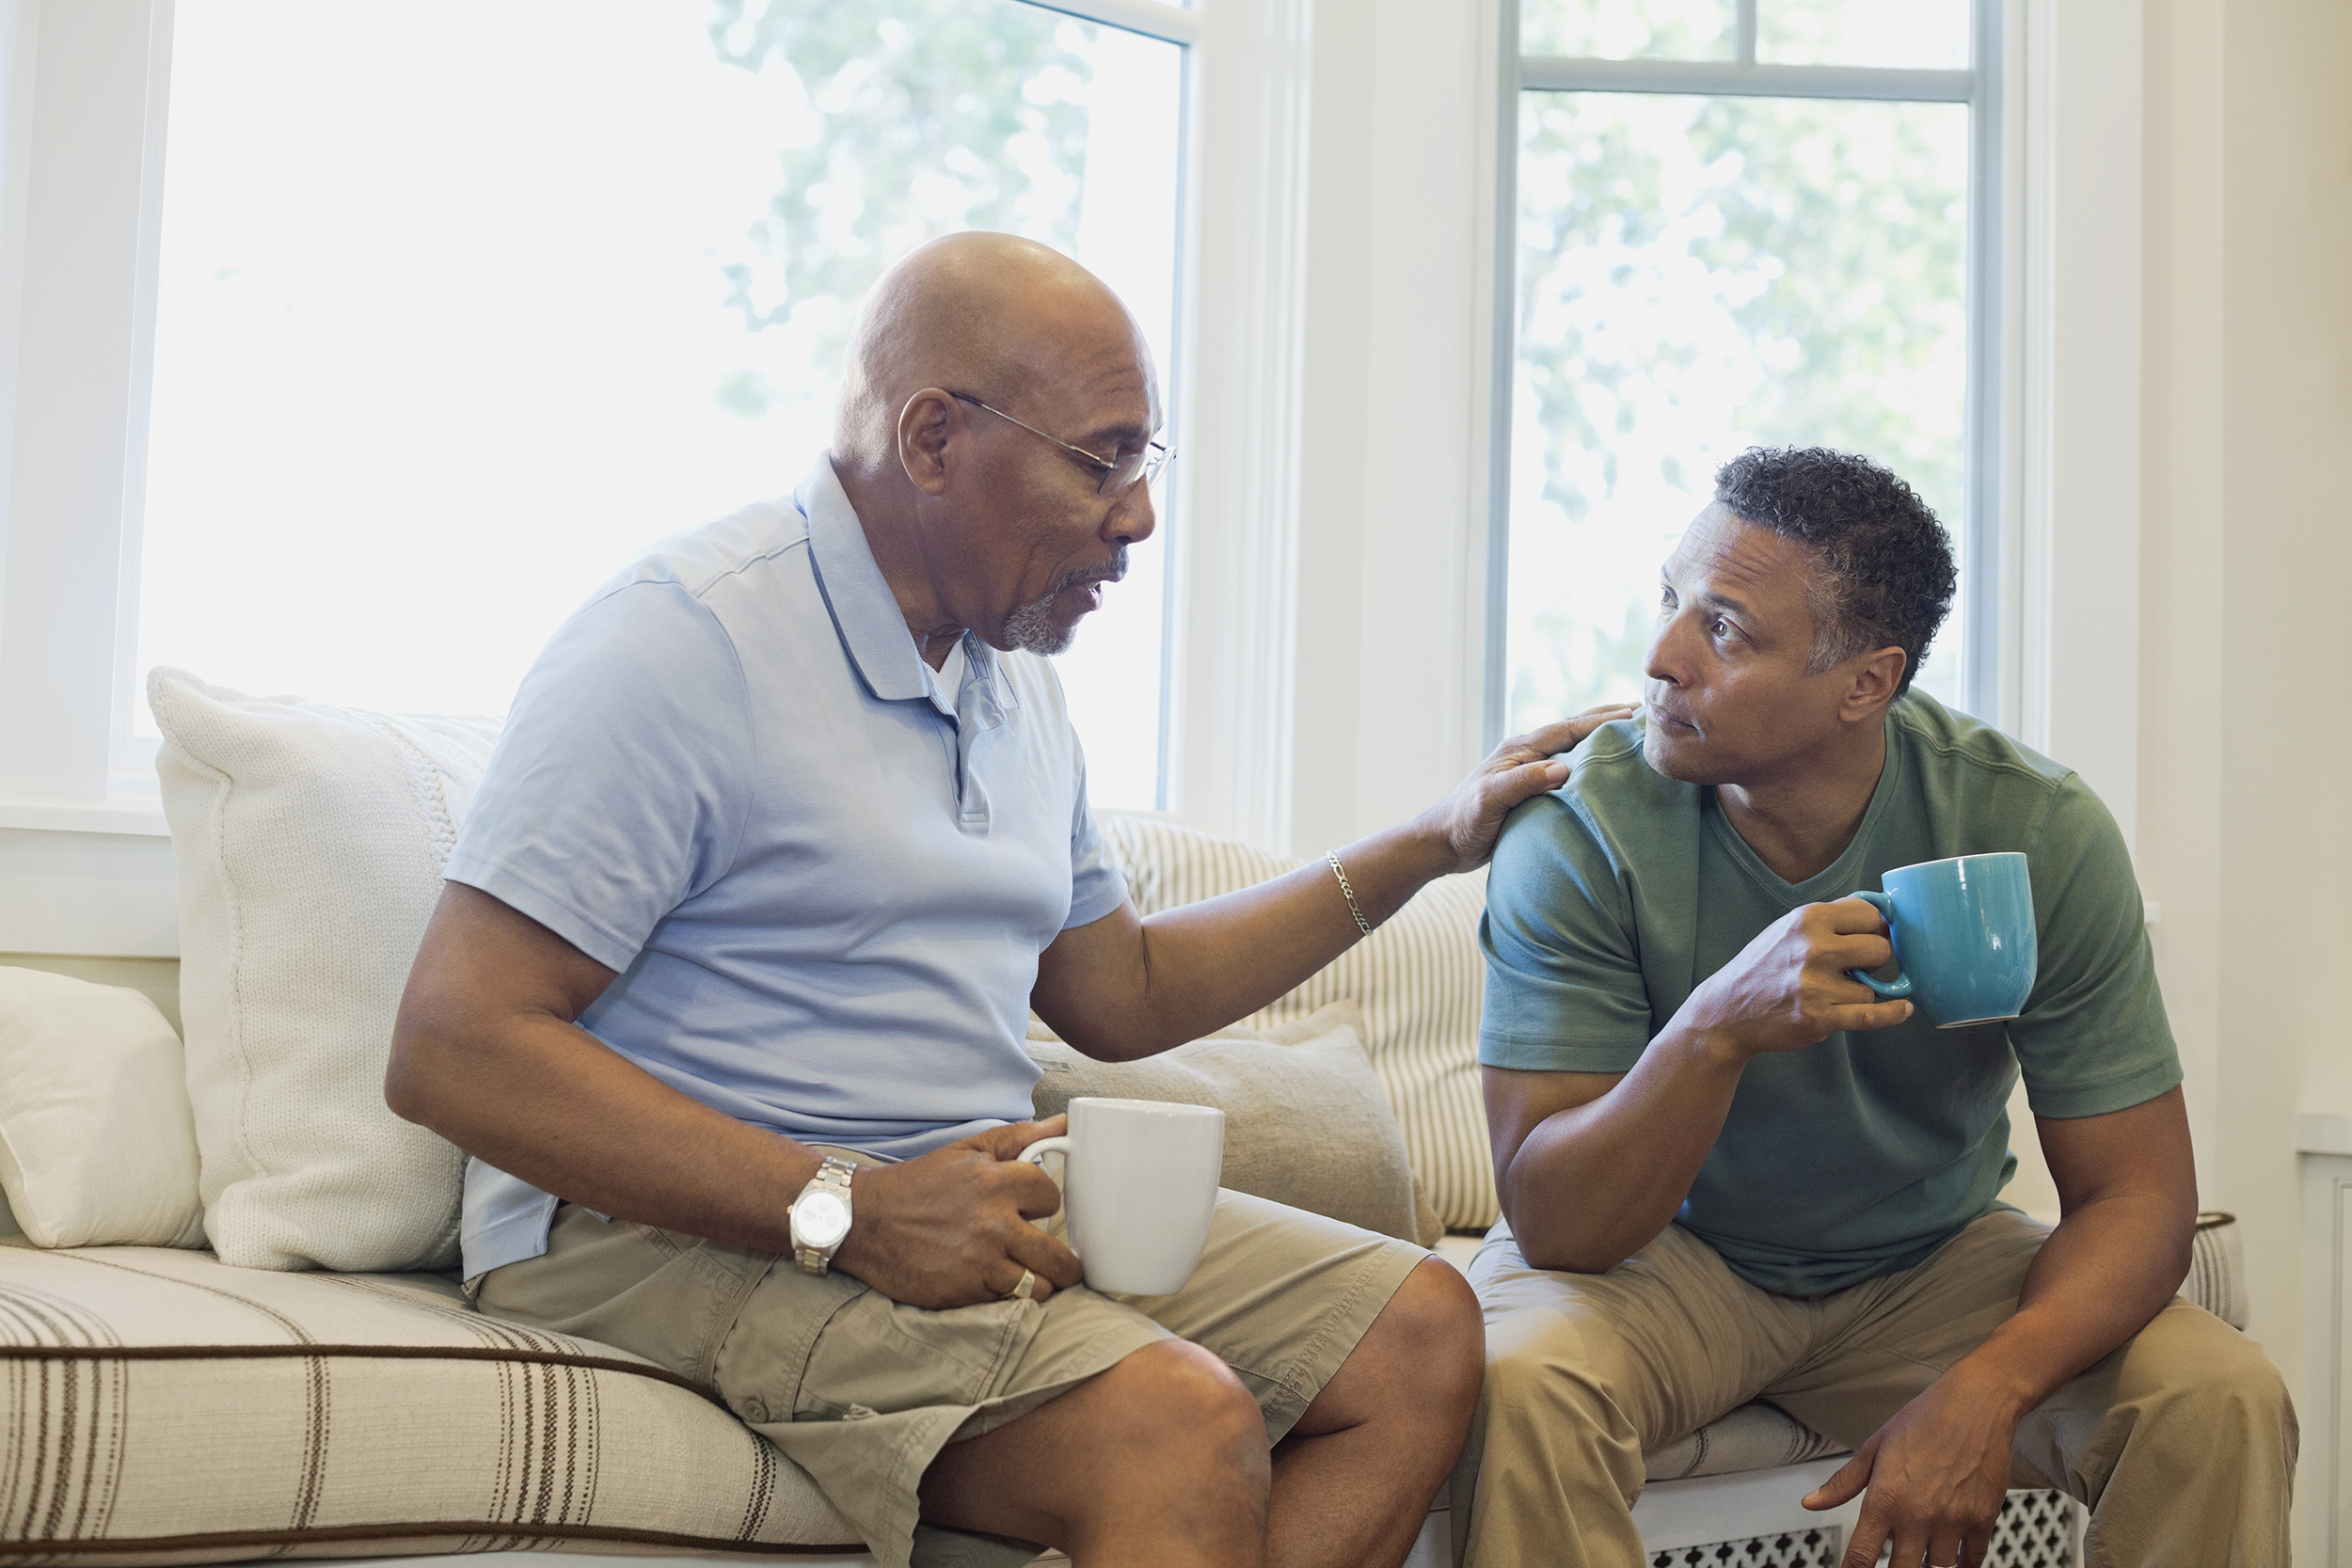 Father having conversation with grown child who makes bad decisions